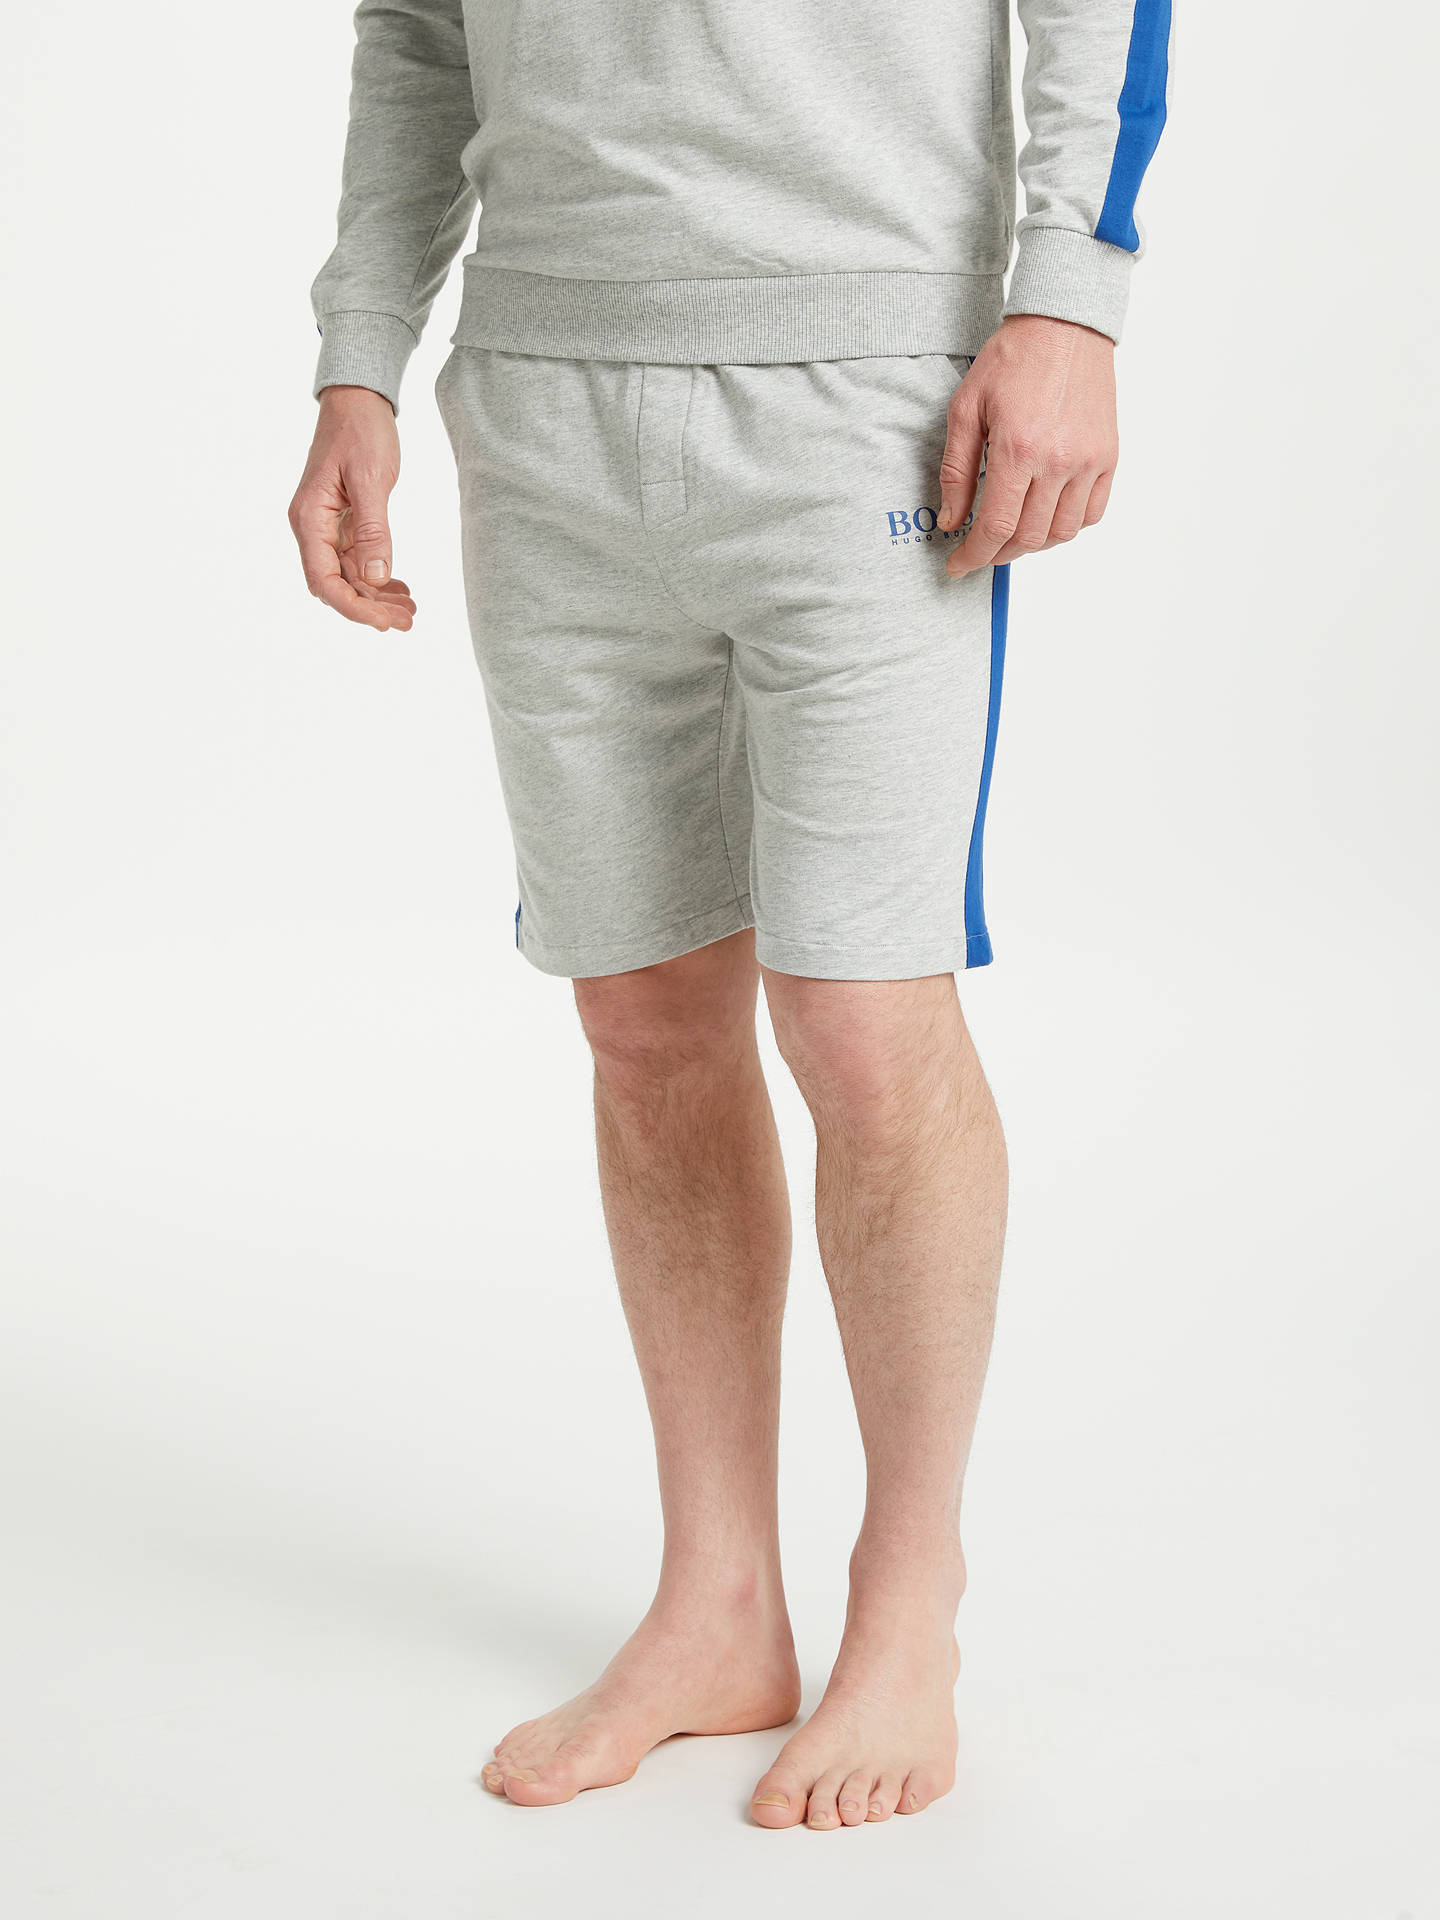 BuyBOSS Authentic Jersey Sweat Shorts, Grey, M Online at johnlewis.com